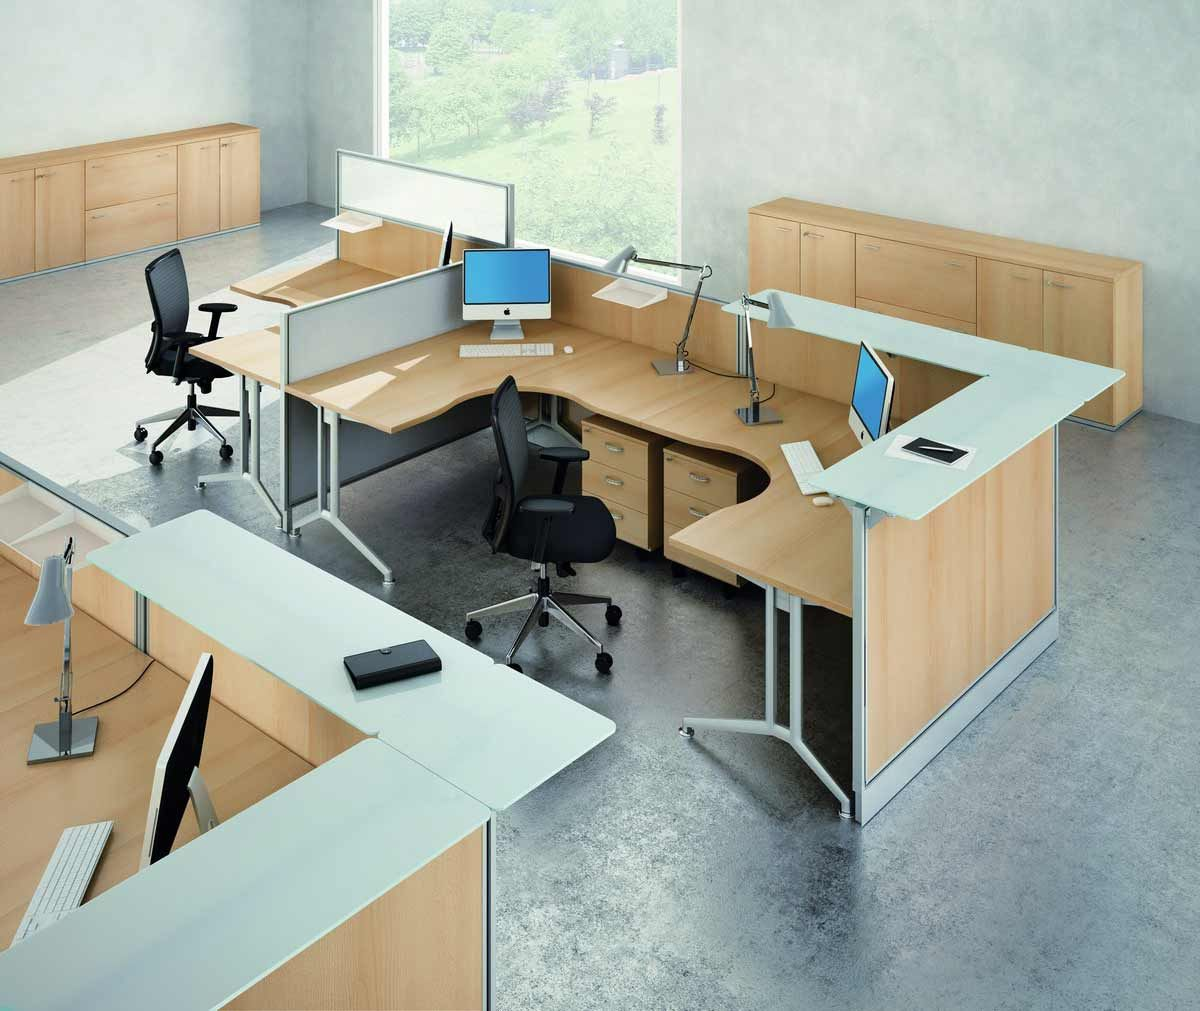 Modular Desk System Provides People The Chance To Run Their Business And  Work In A Limited Space.